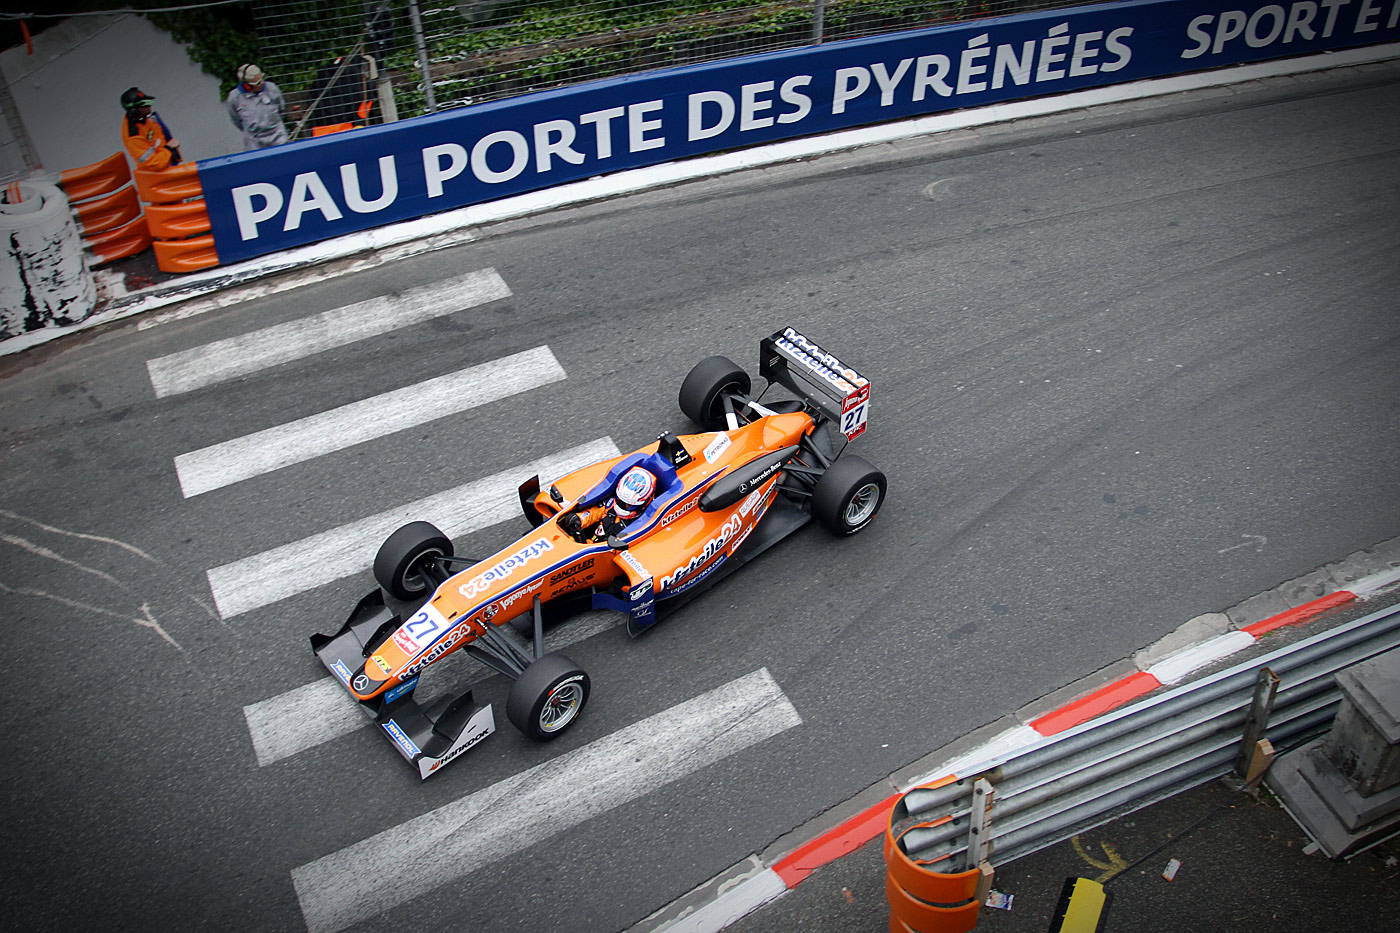 Victory on the streets of Pau